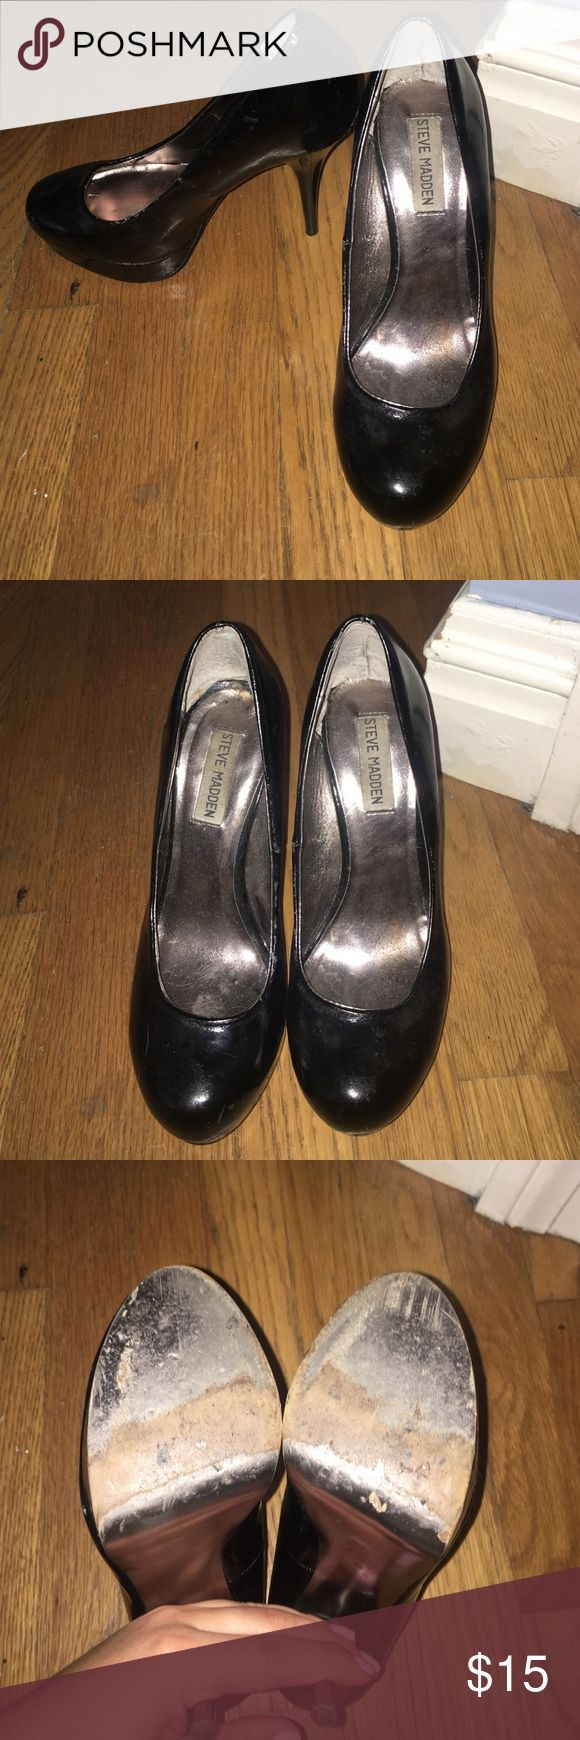 Steve Madden Black Patent Leather Pumps Steve Madden Black Leather Pumps! Have some imperfections, got a lot of great wear out of these. Very comfortable for long wears at work or going out on a Friday night. Bought these at Nordstrom Rack for $80! Steve Madden Shoes Heels